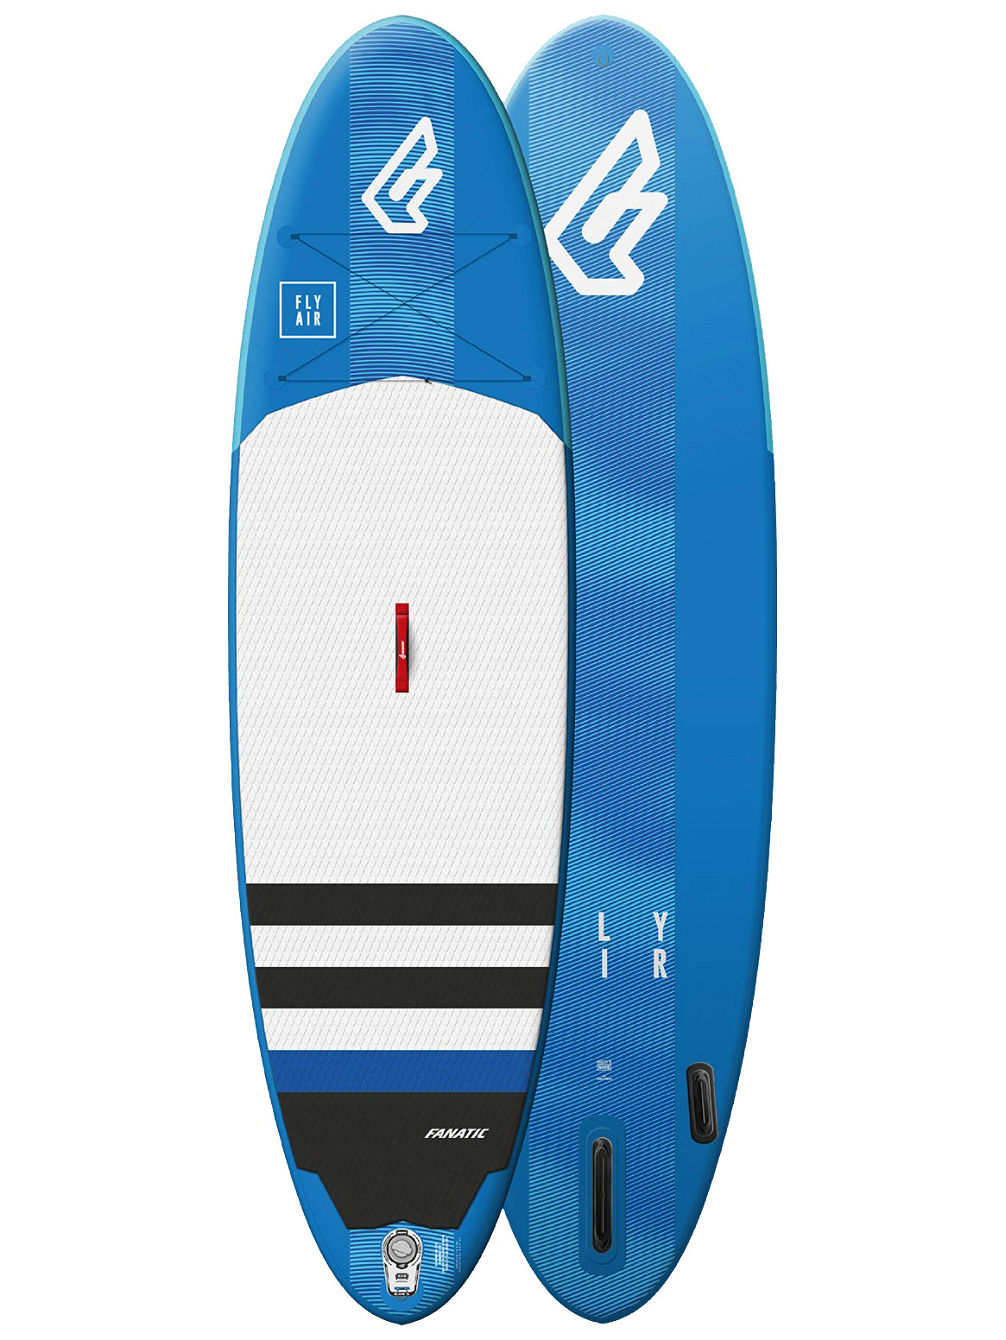 Fly Air 9.0 SUP Board